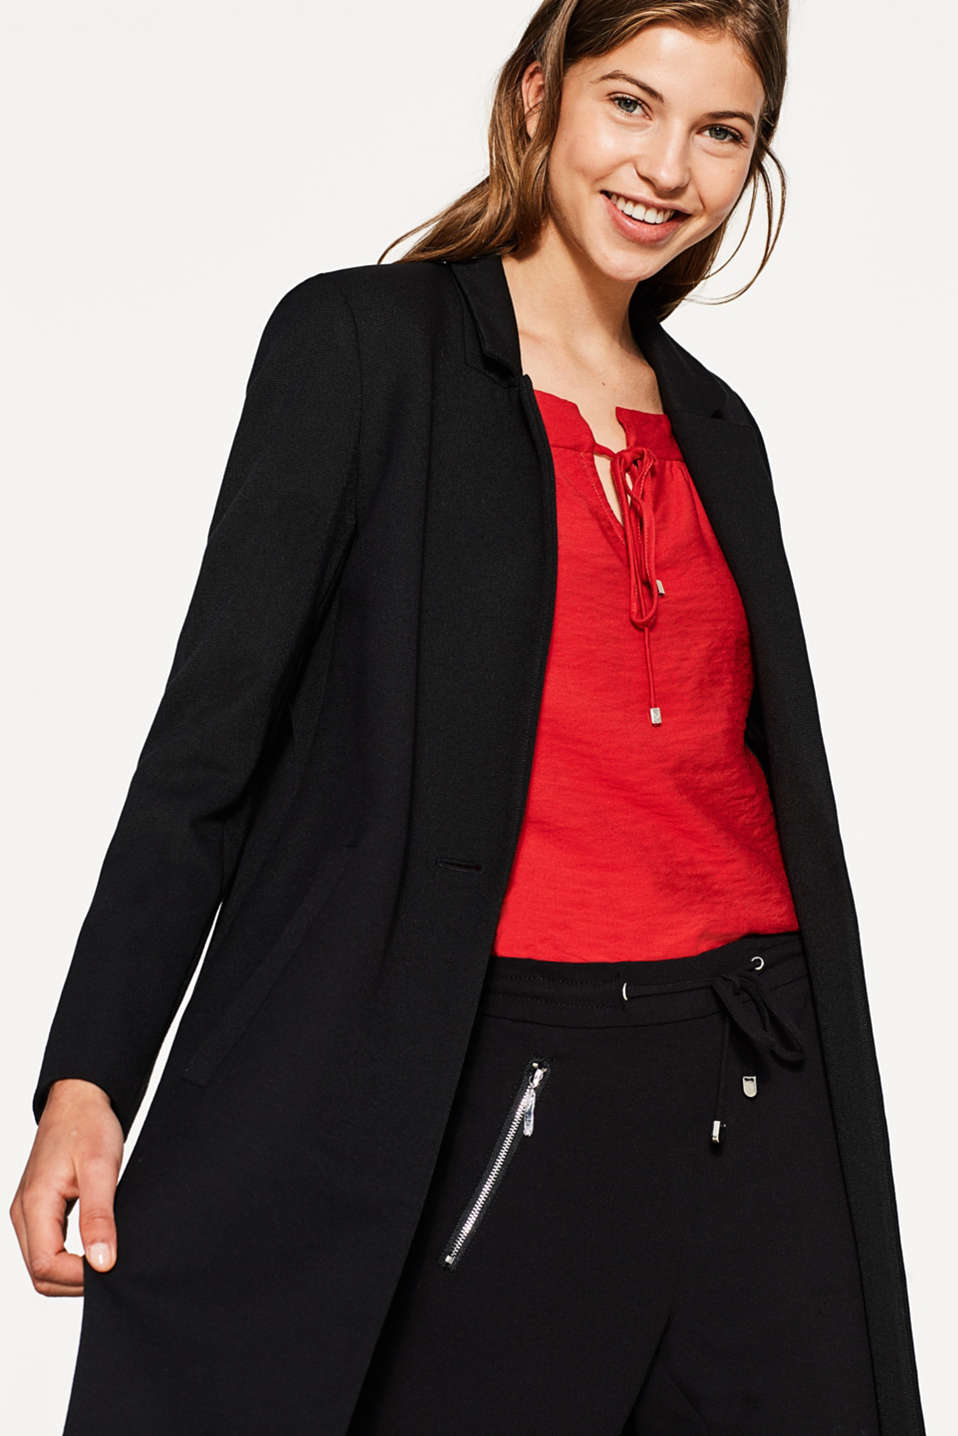 Textured blouse with a square neckline